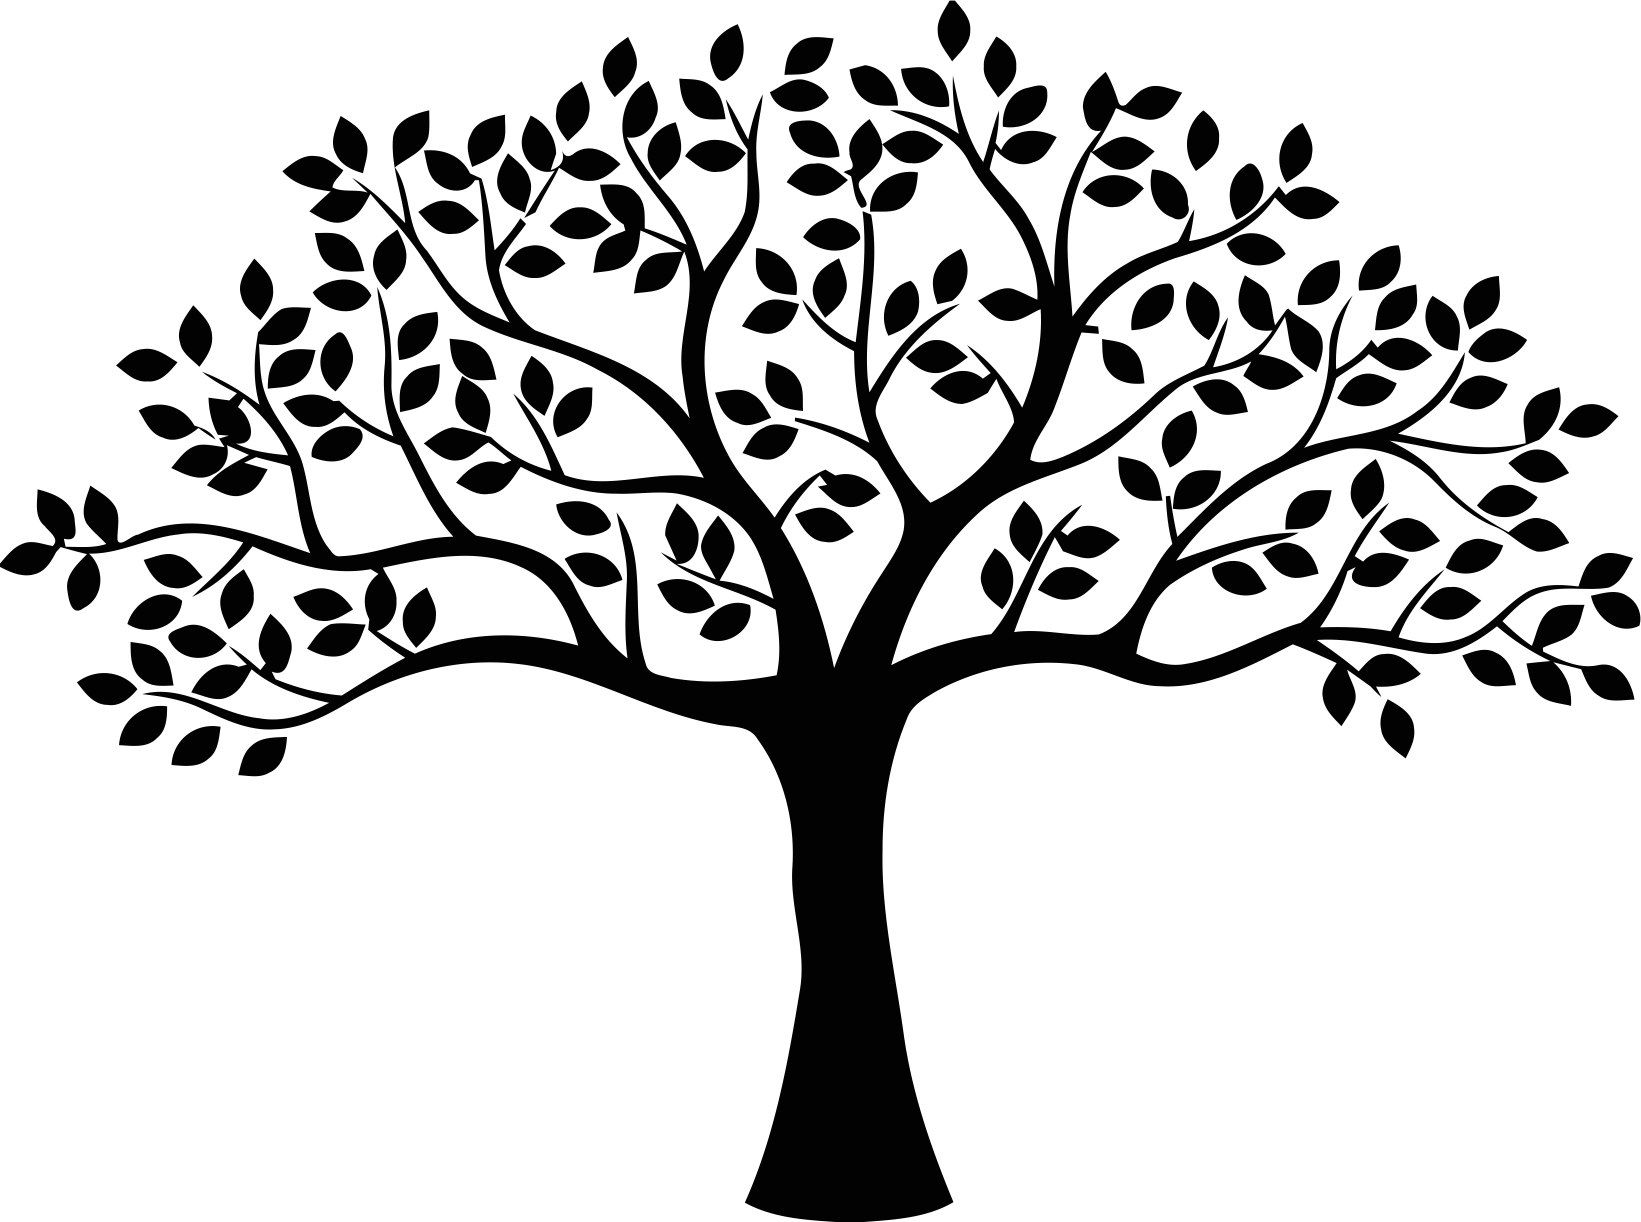 Decor Tree Free Vector cdr Download.